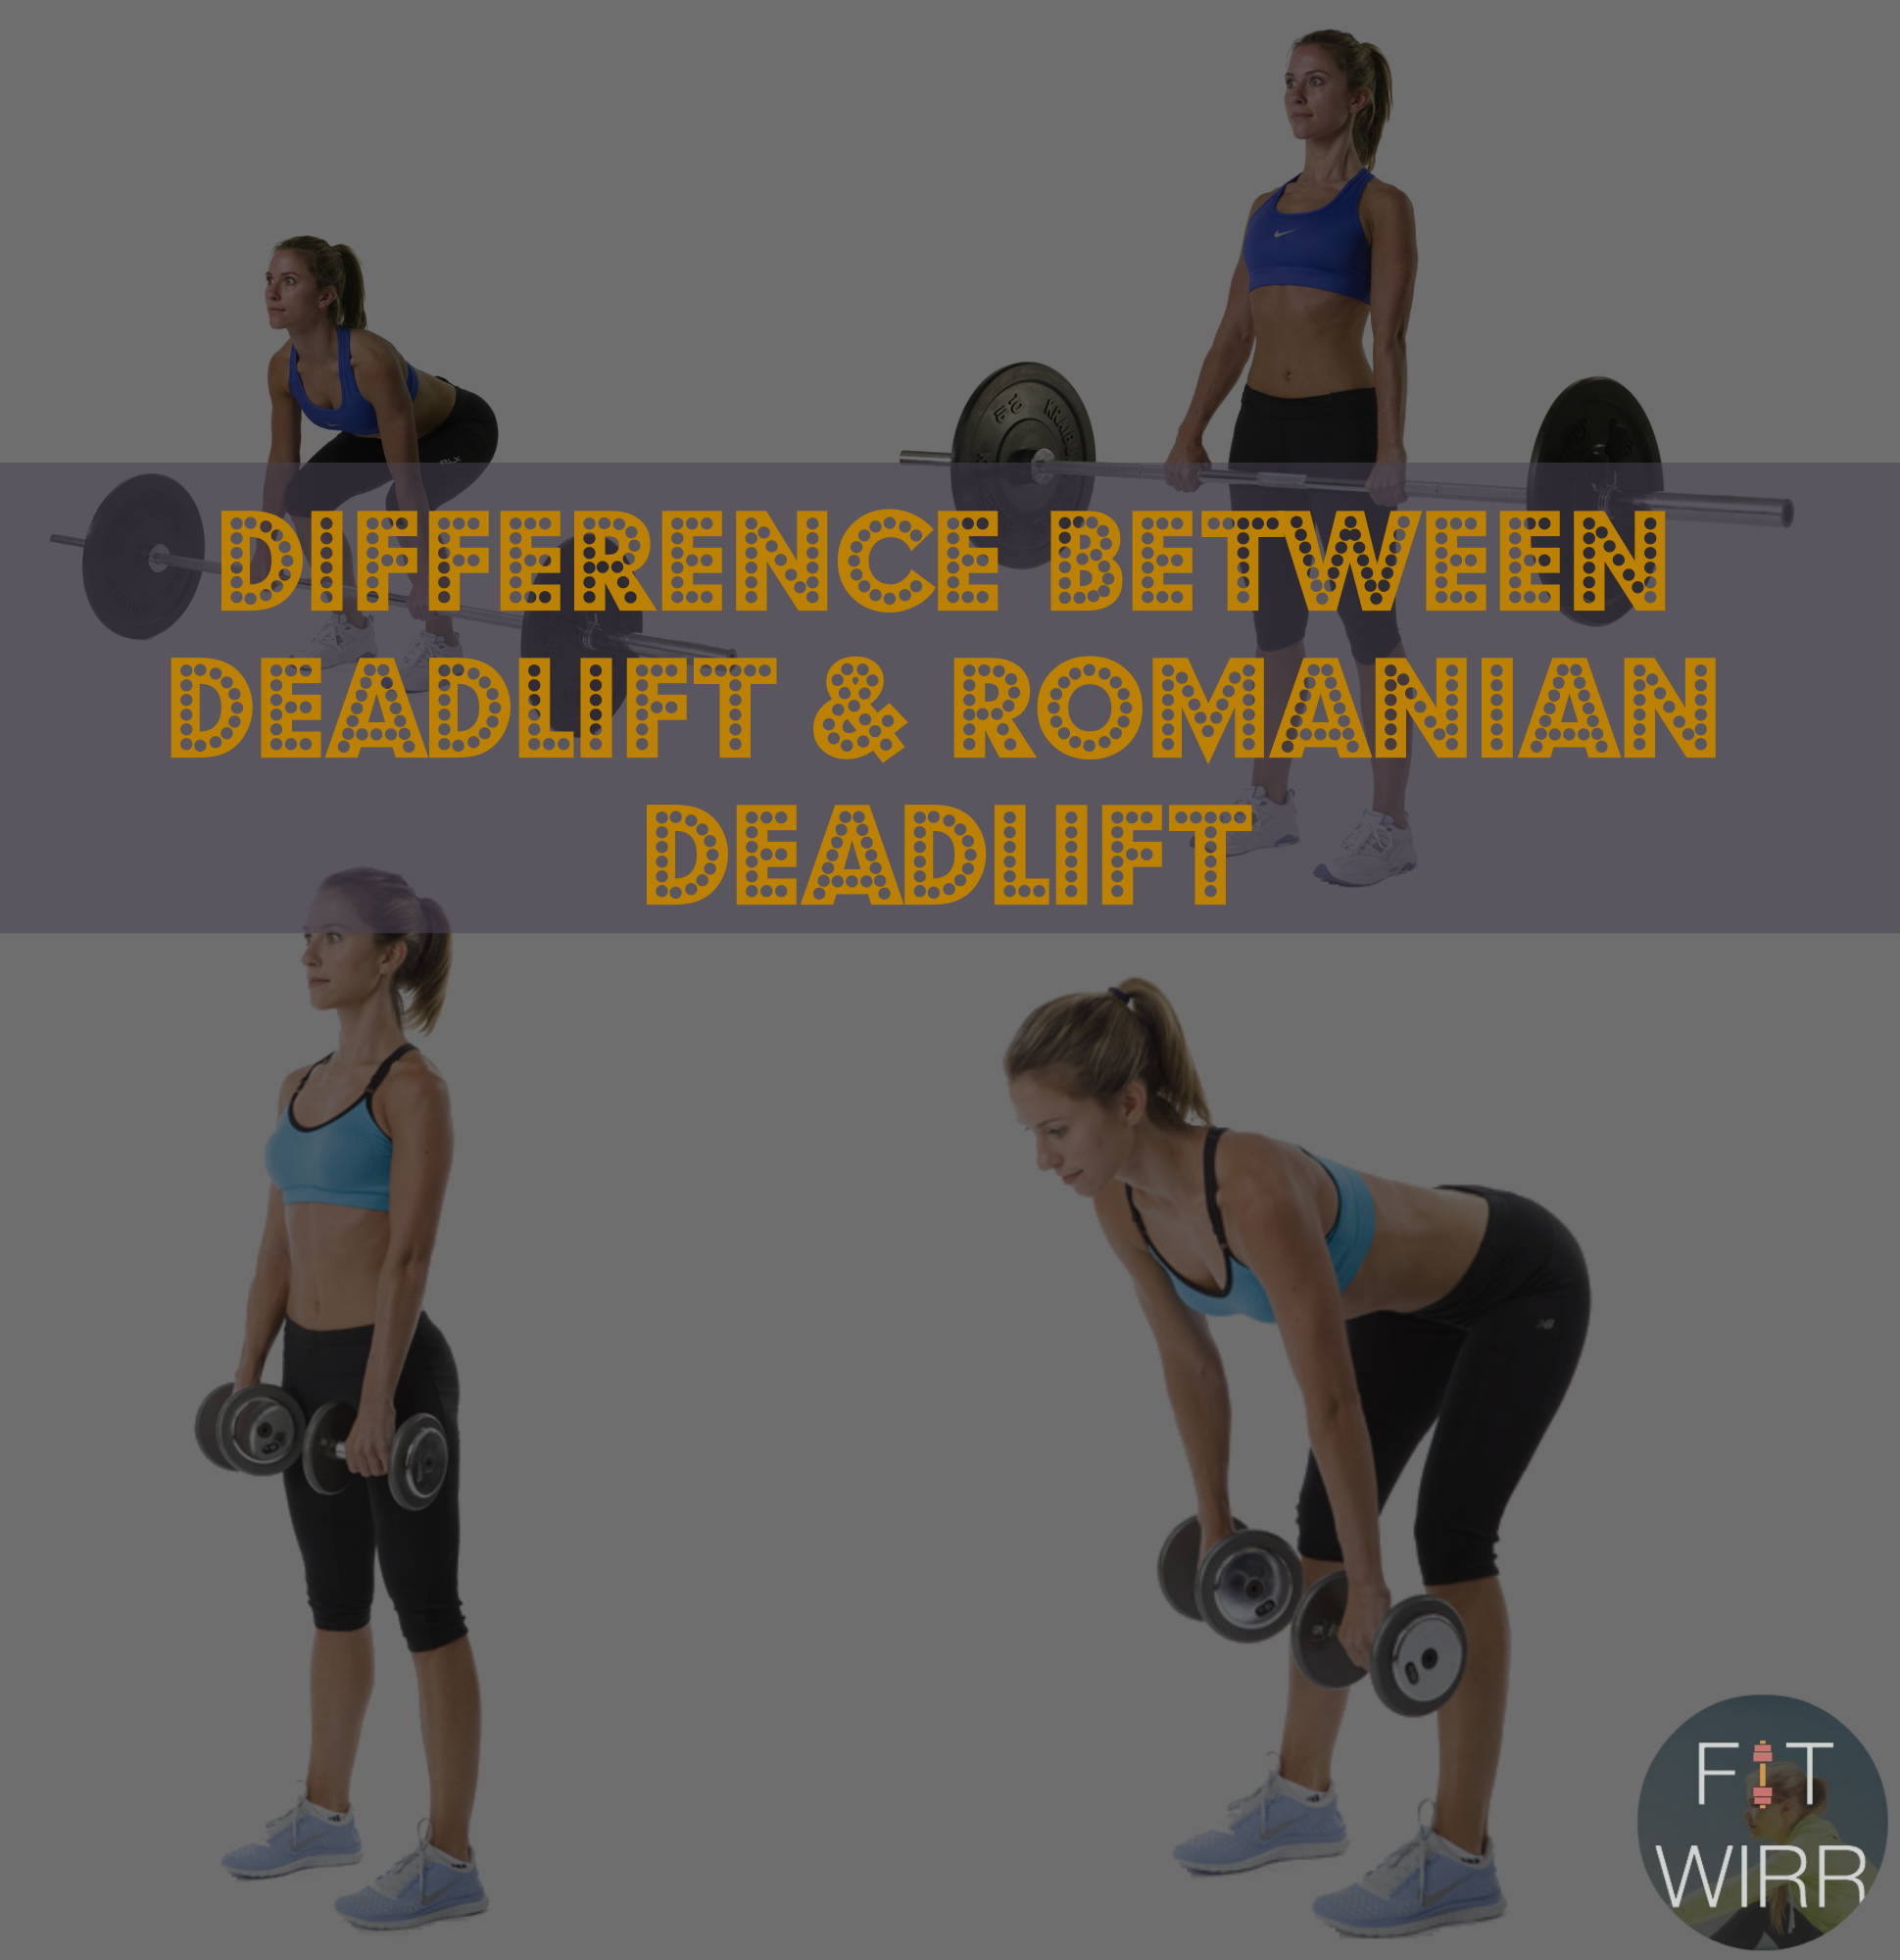 Deadlift Vs Romanian Whats The Difference Fitness Circuit Training Tricep Killer 572012 Bpm Rx Between And Regular Workout Schedule Challenge Ideas